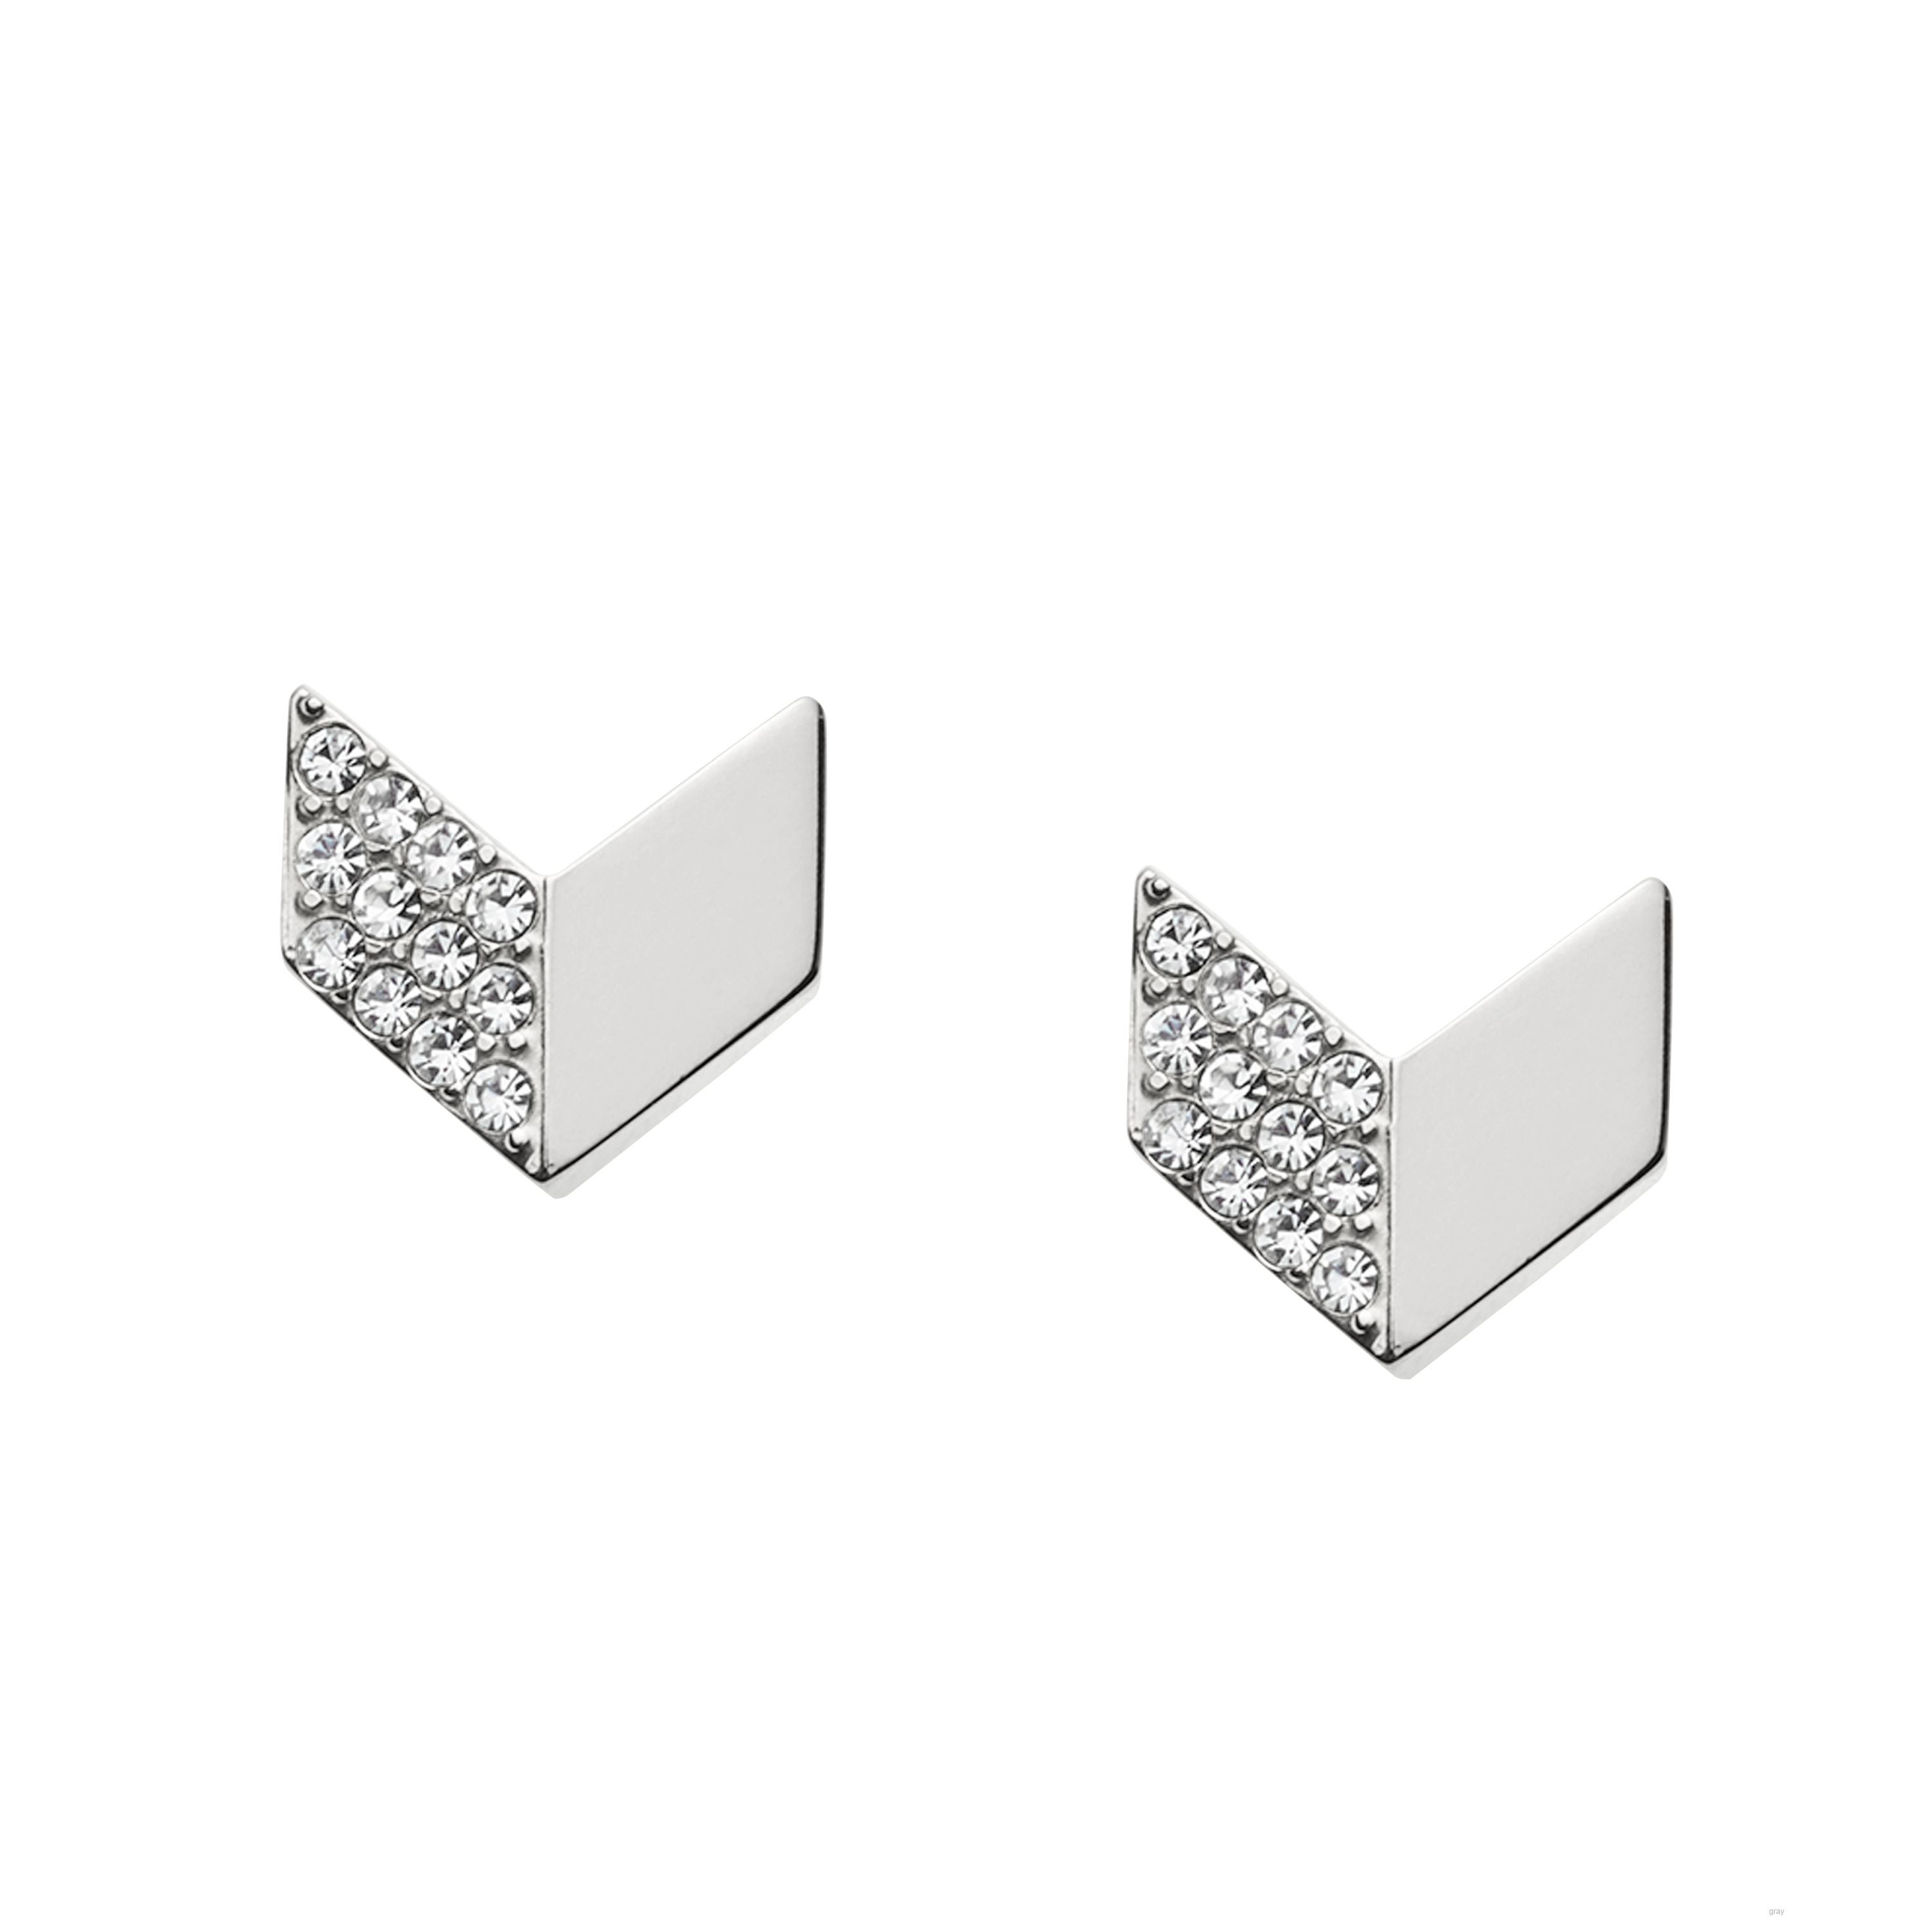 fossil jf02422040 ladies earring studs